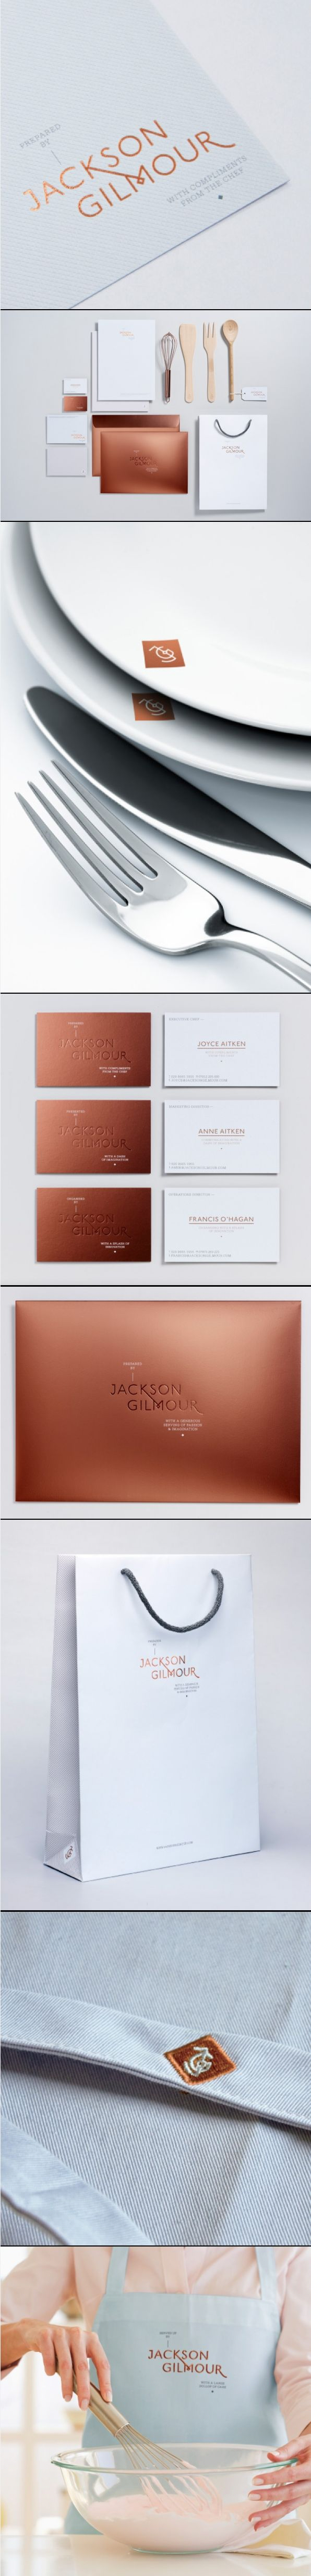 Copper Foil!!!! Love it. Magpie Studio #identity #packaging #branding anybody hungry after seeing this? PD